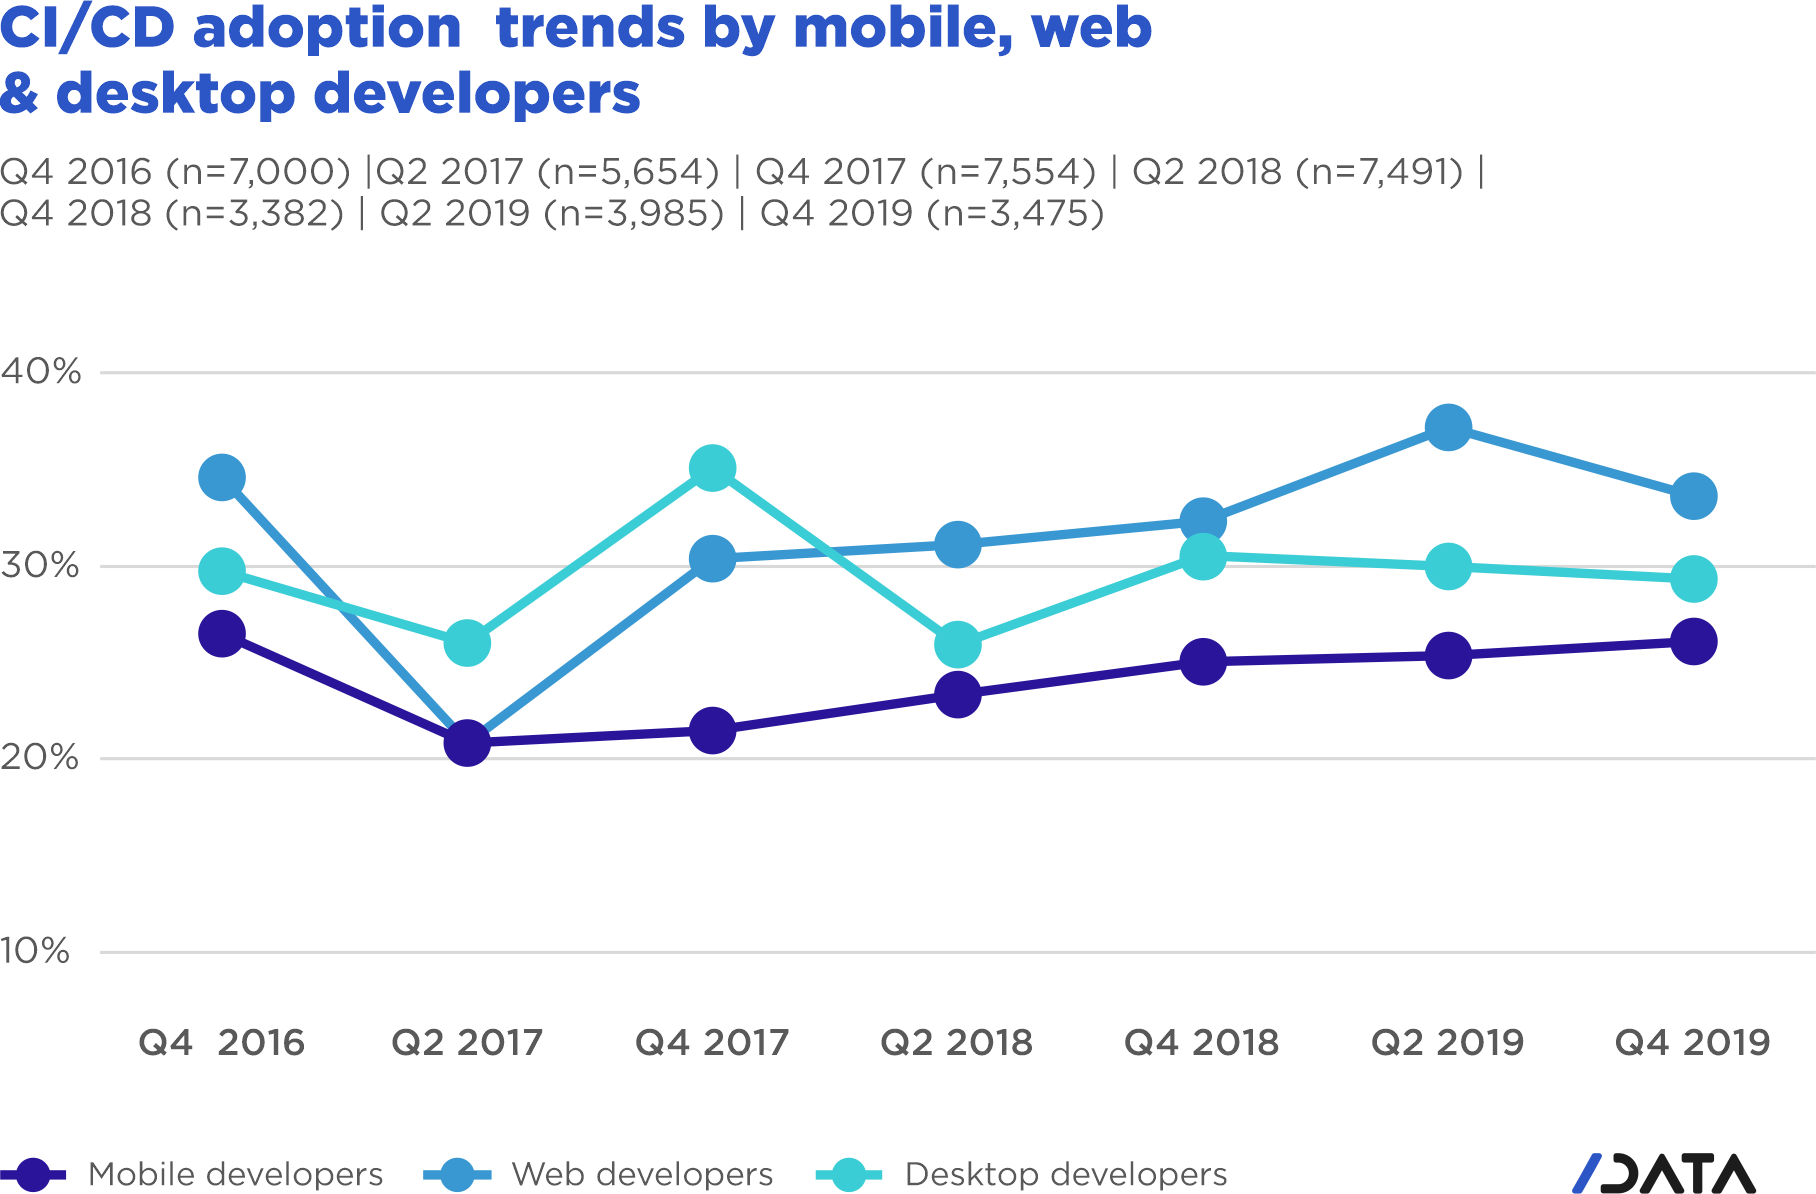 DevOps CI/CD usage trends - CI/CD adoption trends by mobile, web and desktop developers